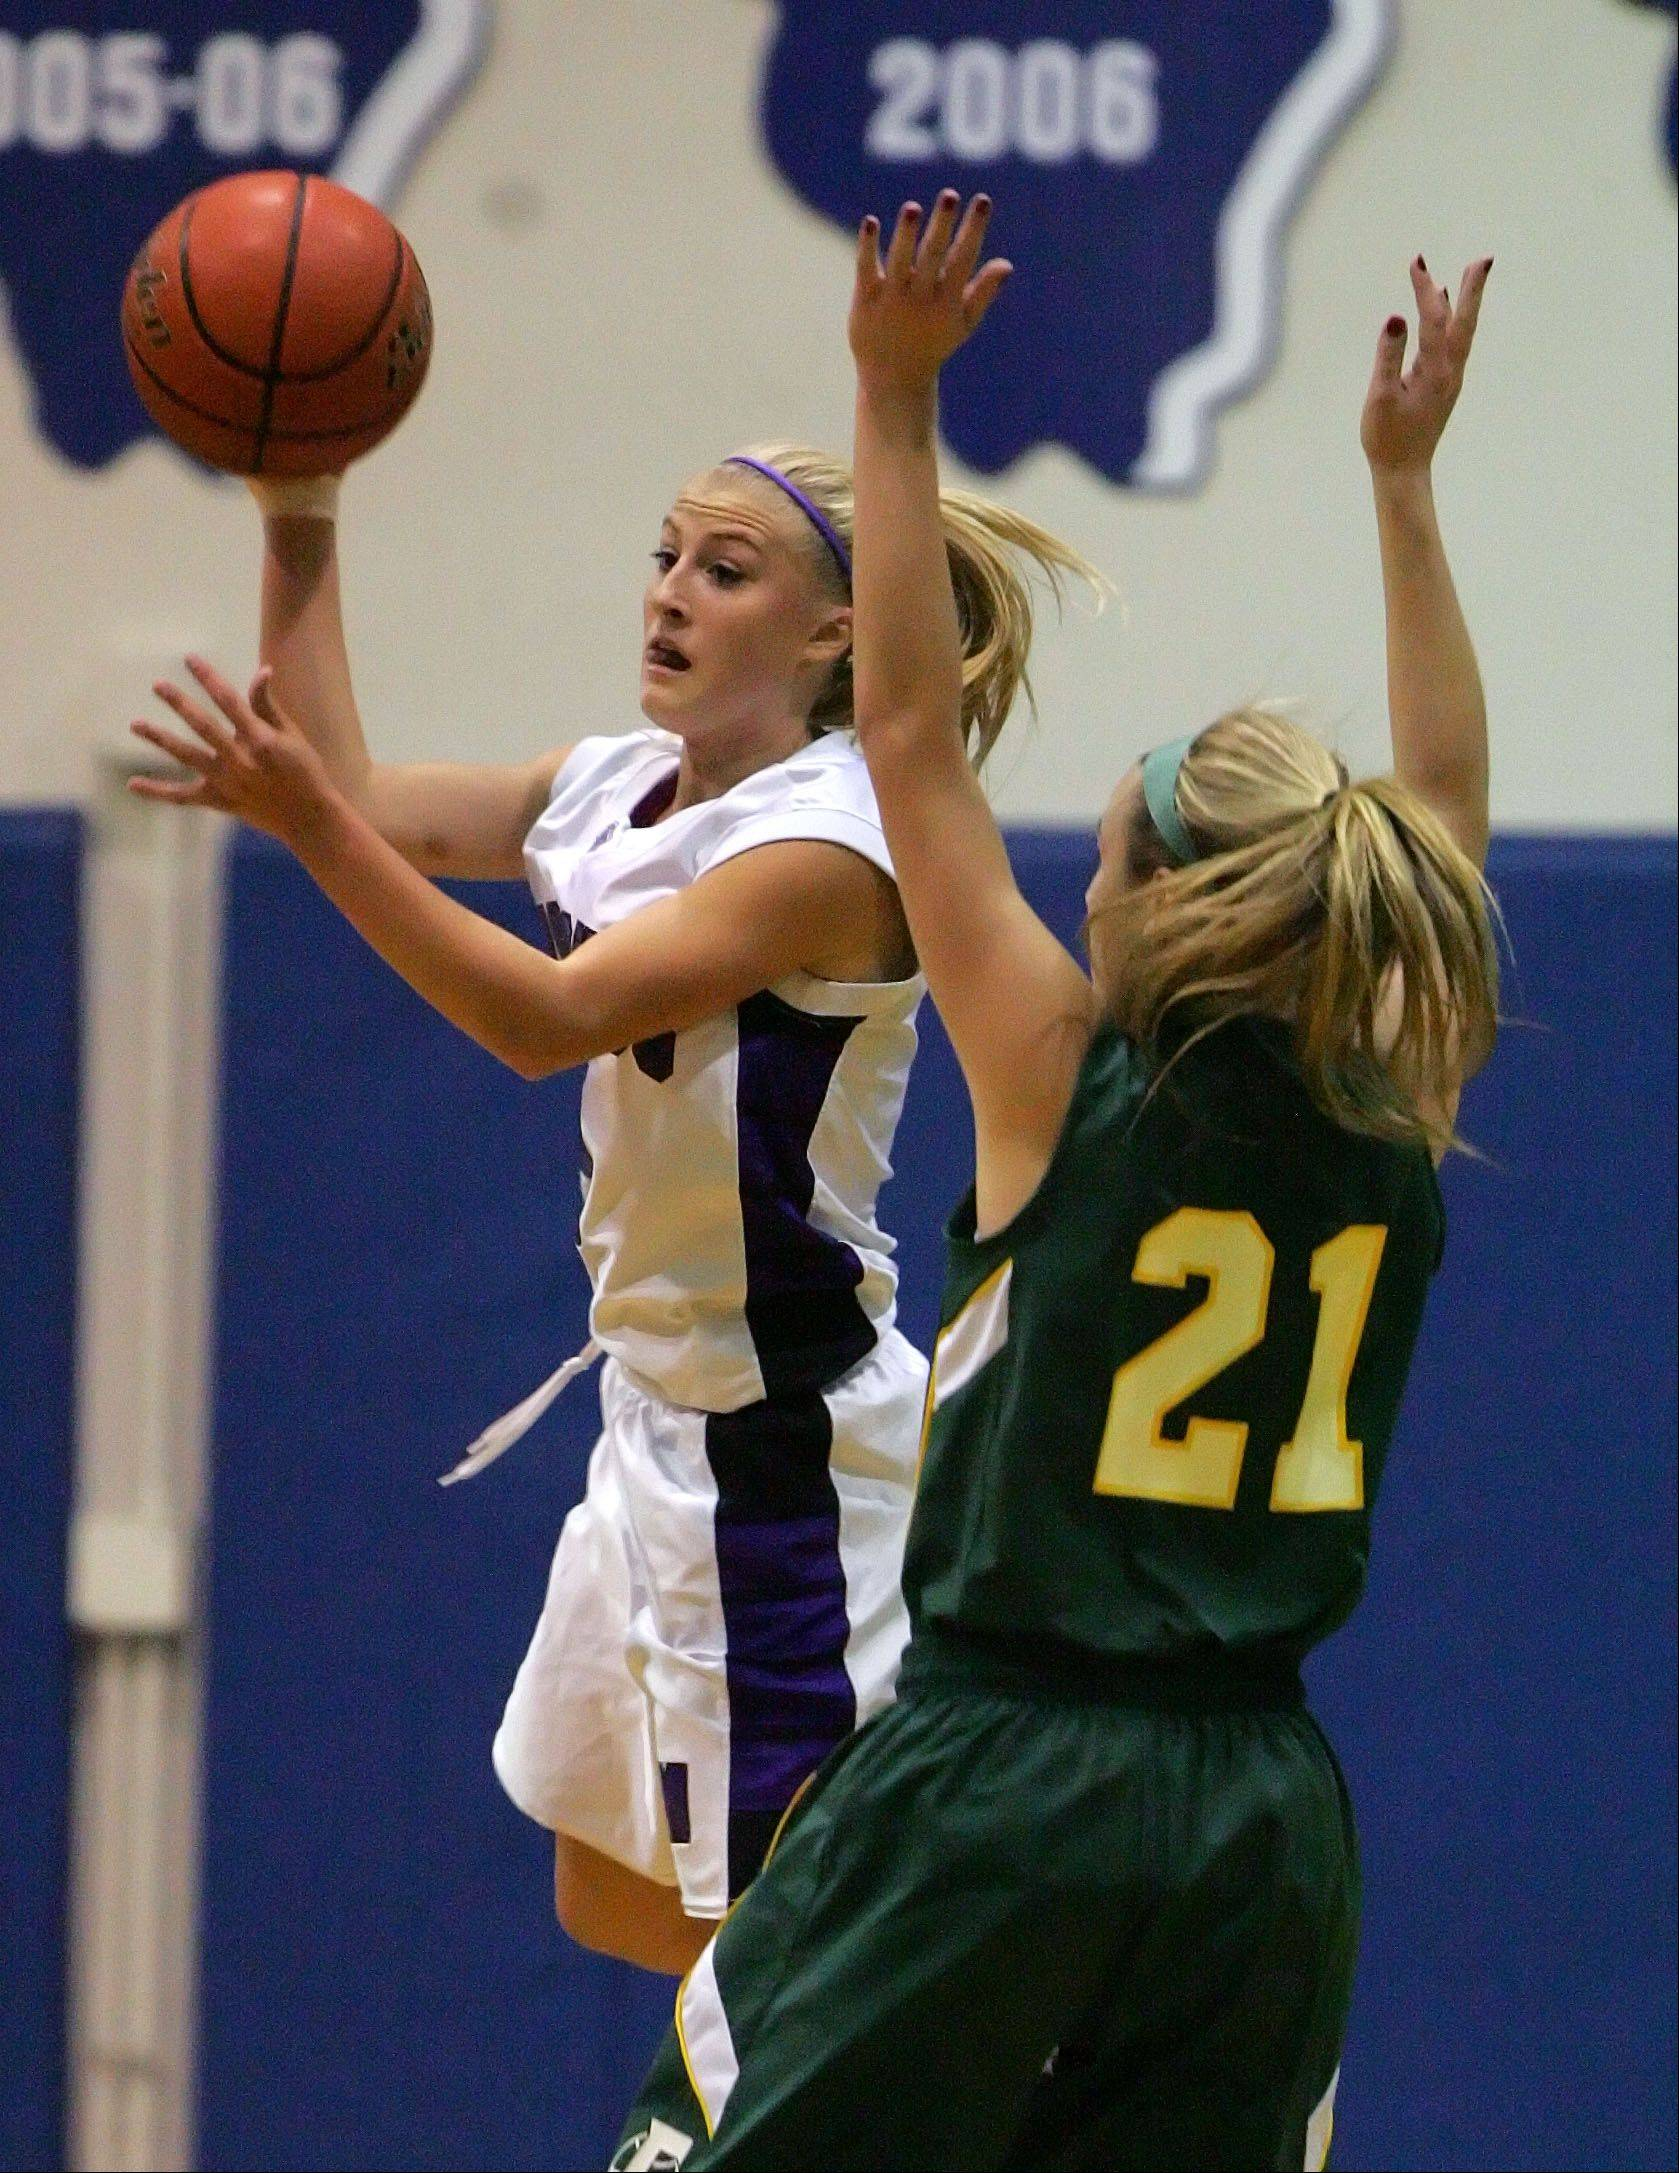 Steve Lundy/slundy@dailyherald.com Rolling Meadows' Jackie Kemph, left, drives on Fremd's Ashley McConnell during their game Wednesday night at Lake Zurich High School.